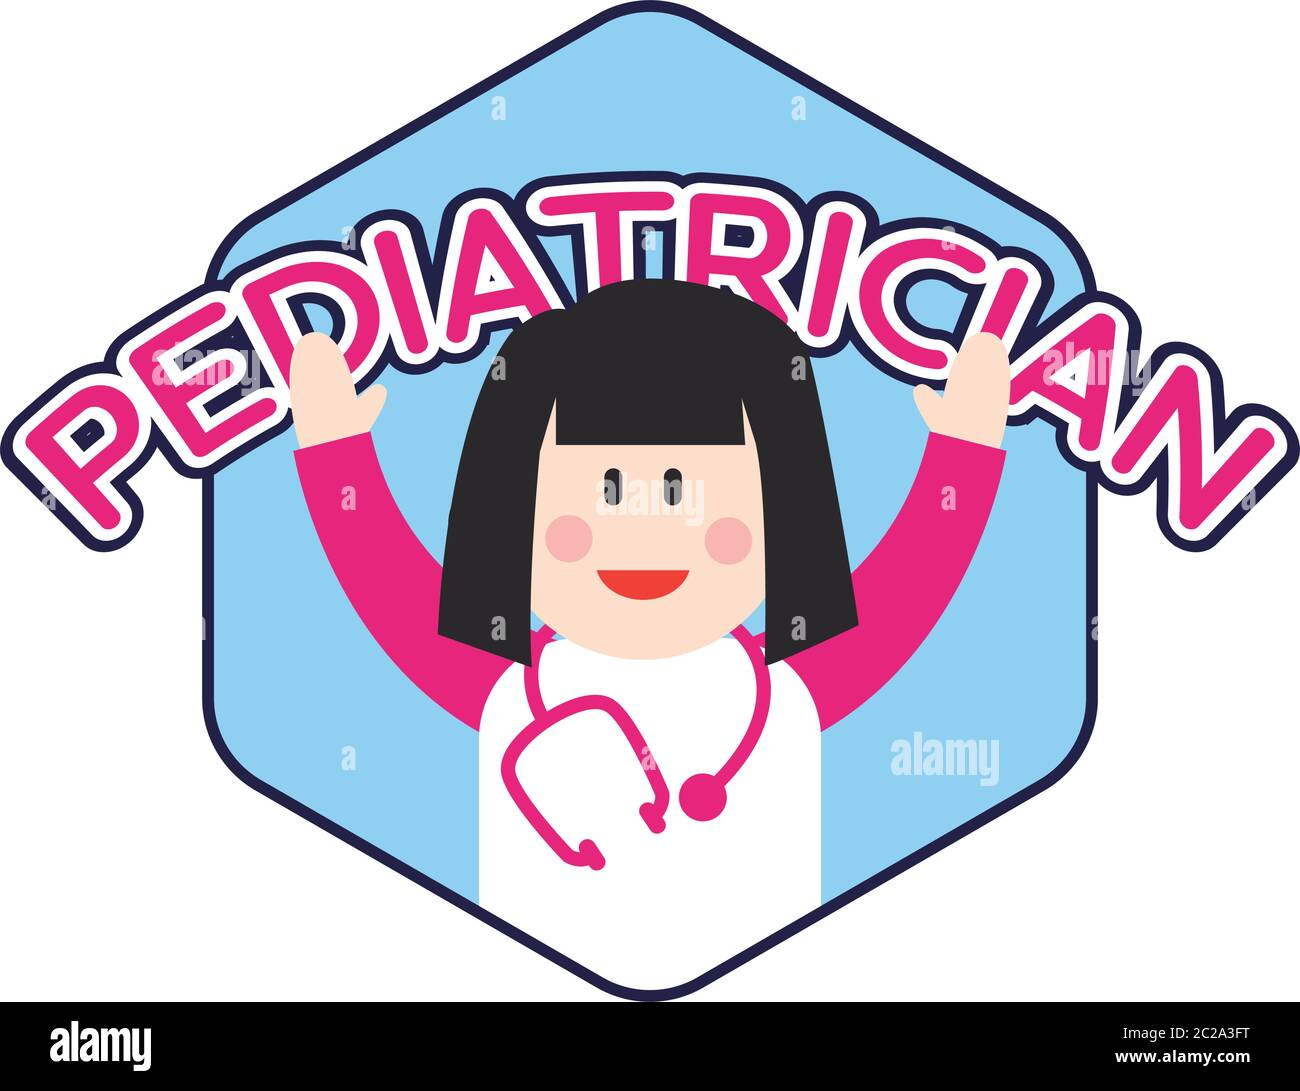 Pediatrician Logo For Doctor Or Clinic Vector Illustration Stock Vector Image Art Alamy